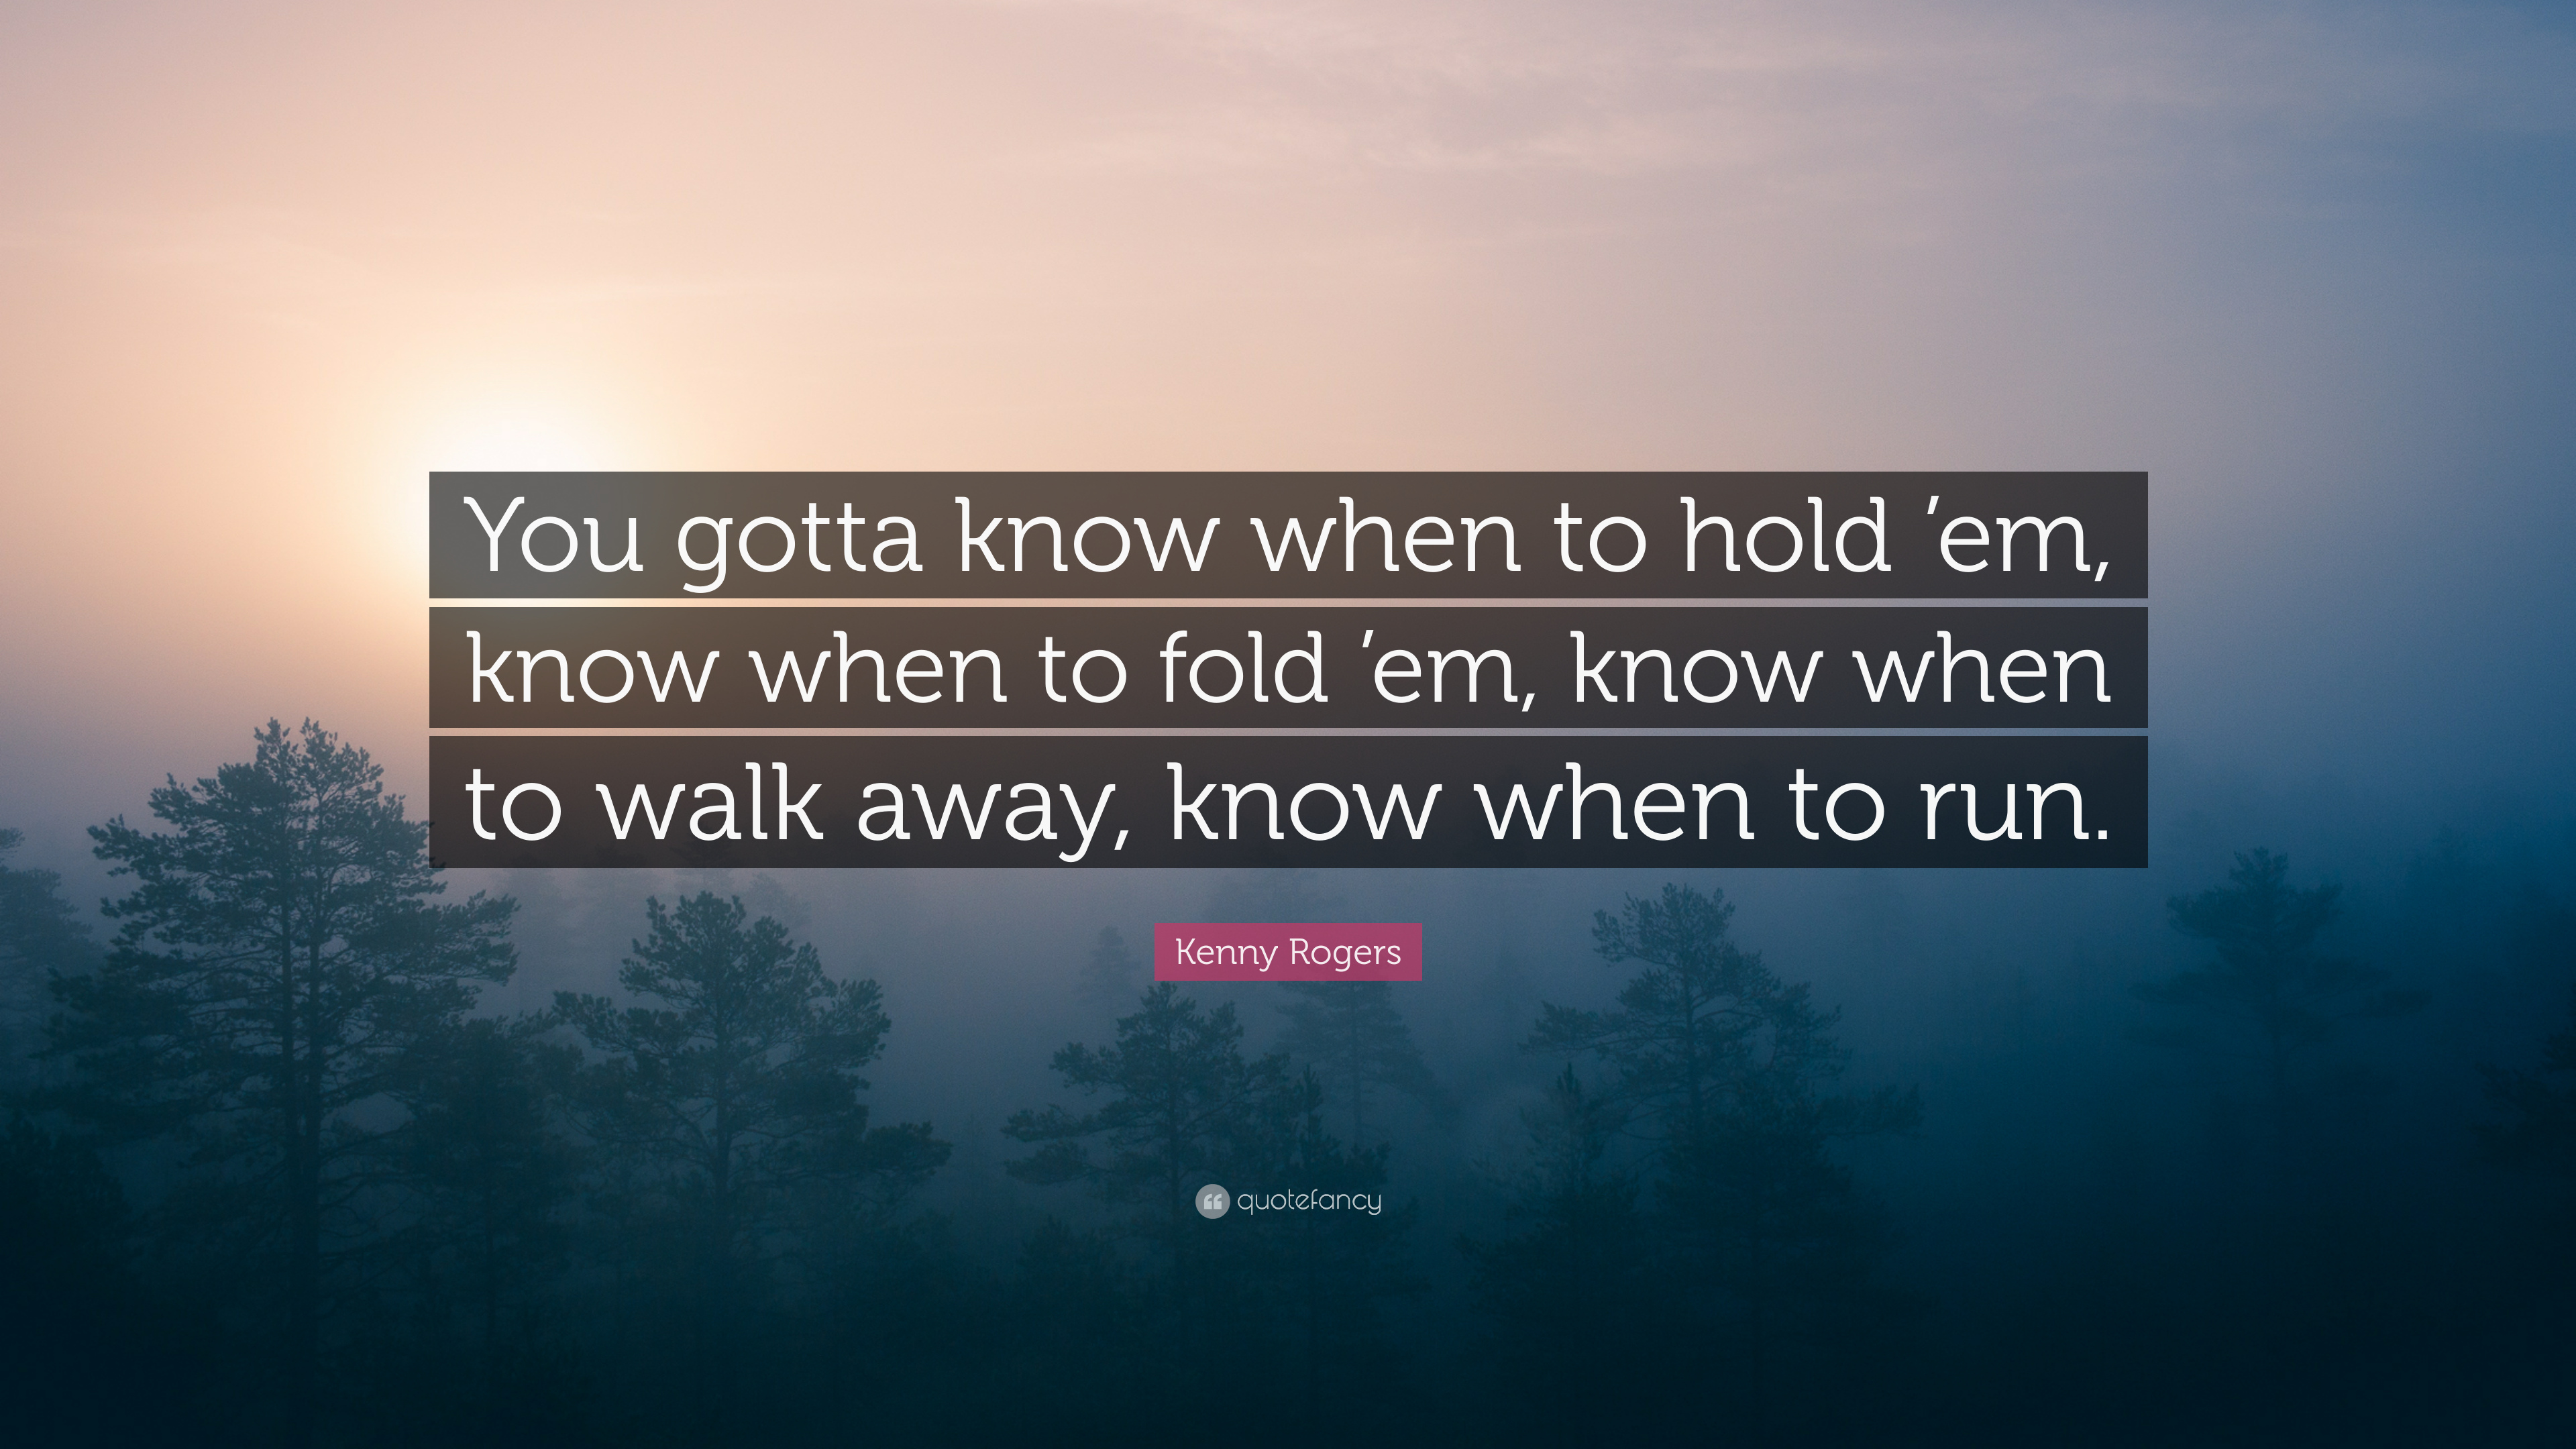 kenny rogers quote you gotta know when to hold em know when to